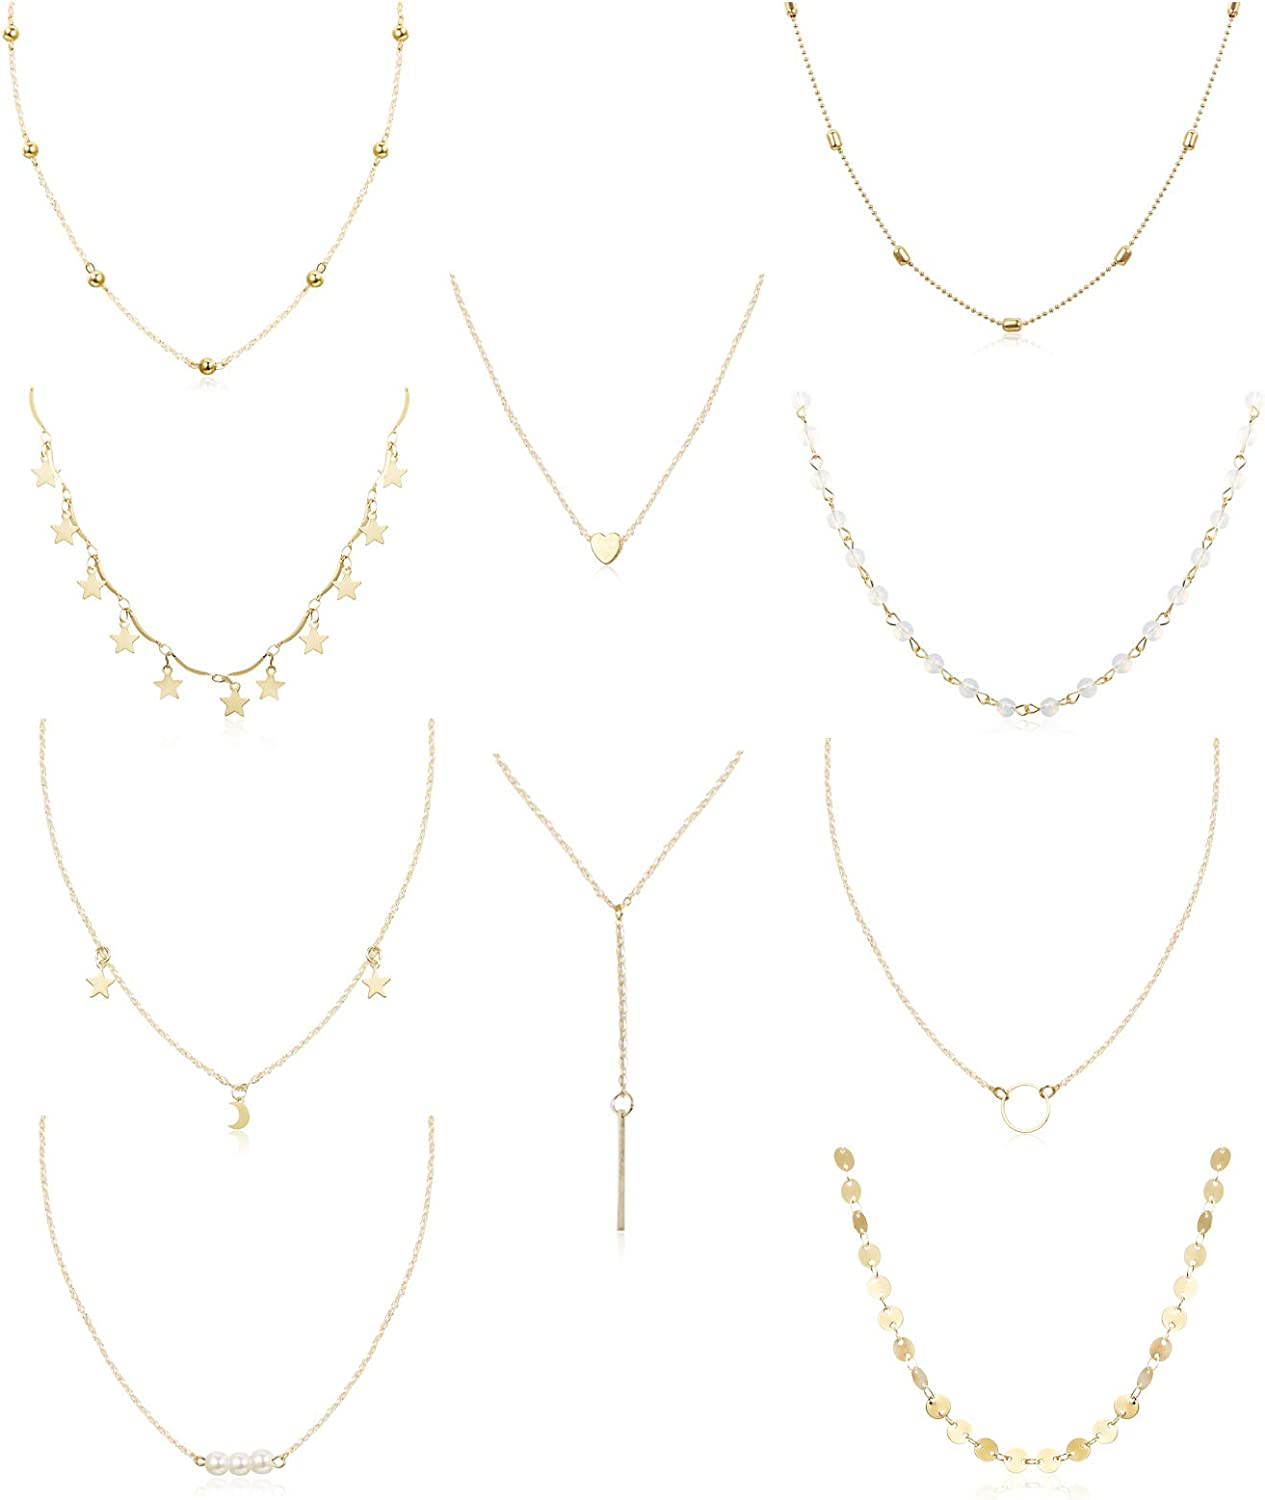 Amazon Com Funrun Jewelry 10pcs Layered Chocker Necklace For Women Girls Multilayer Chain Necklace Set Adjustable 10pcs Gold Tone Clothing